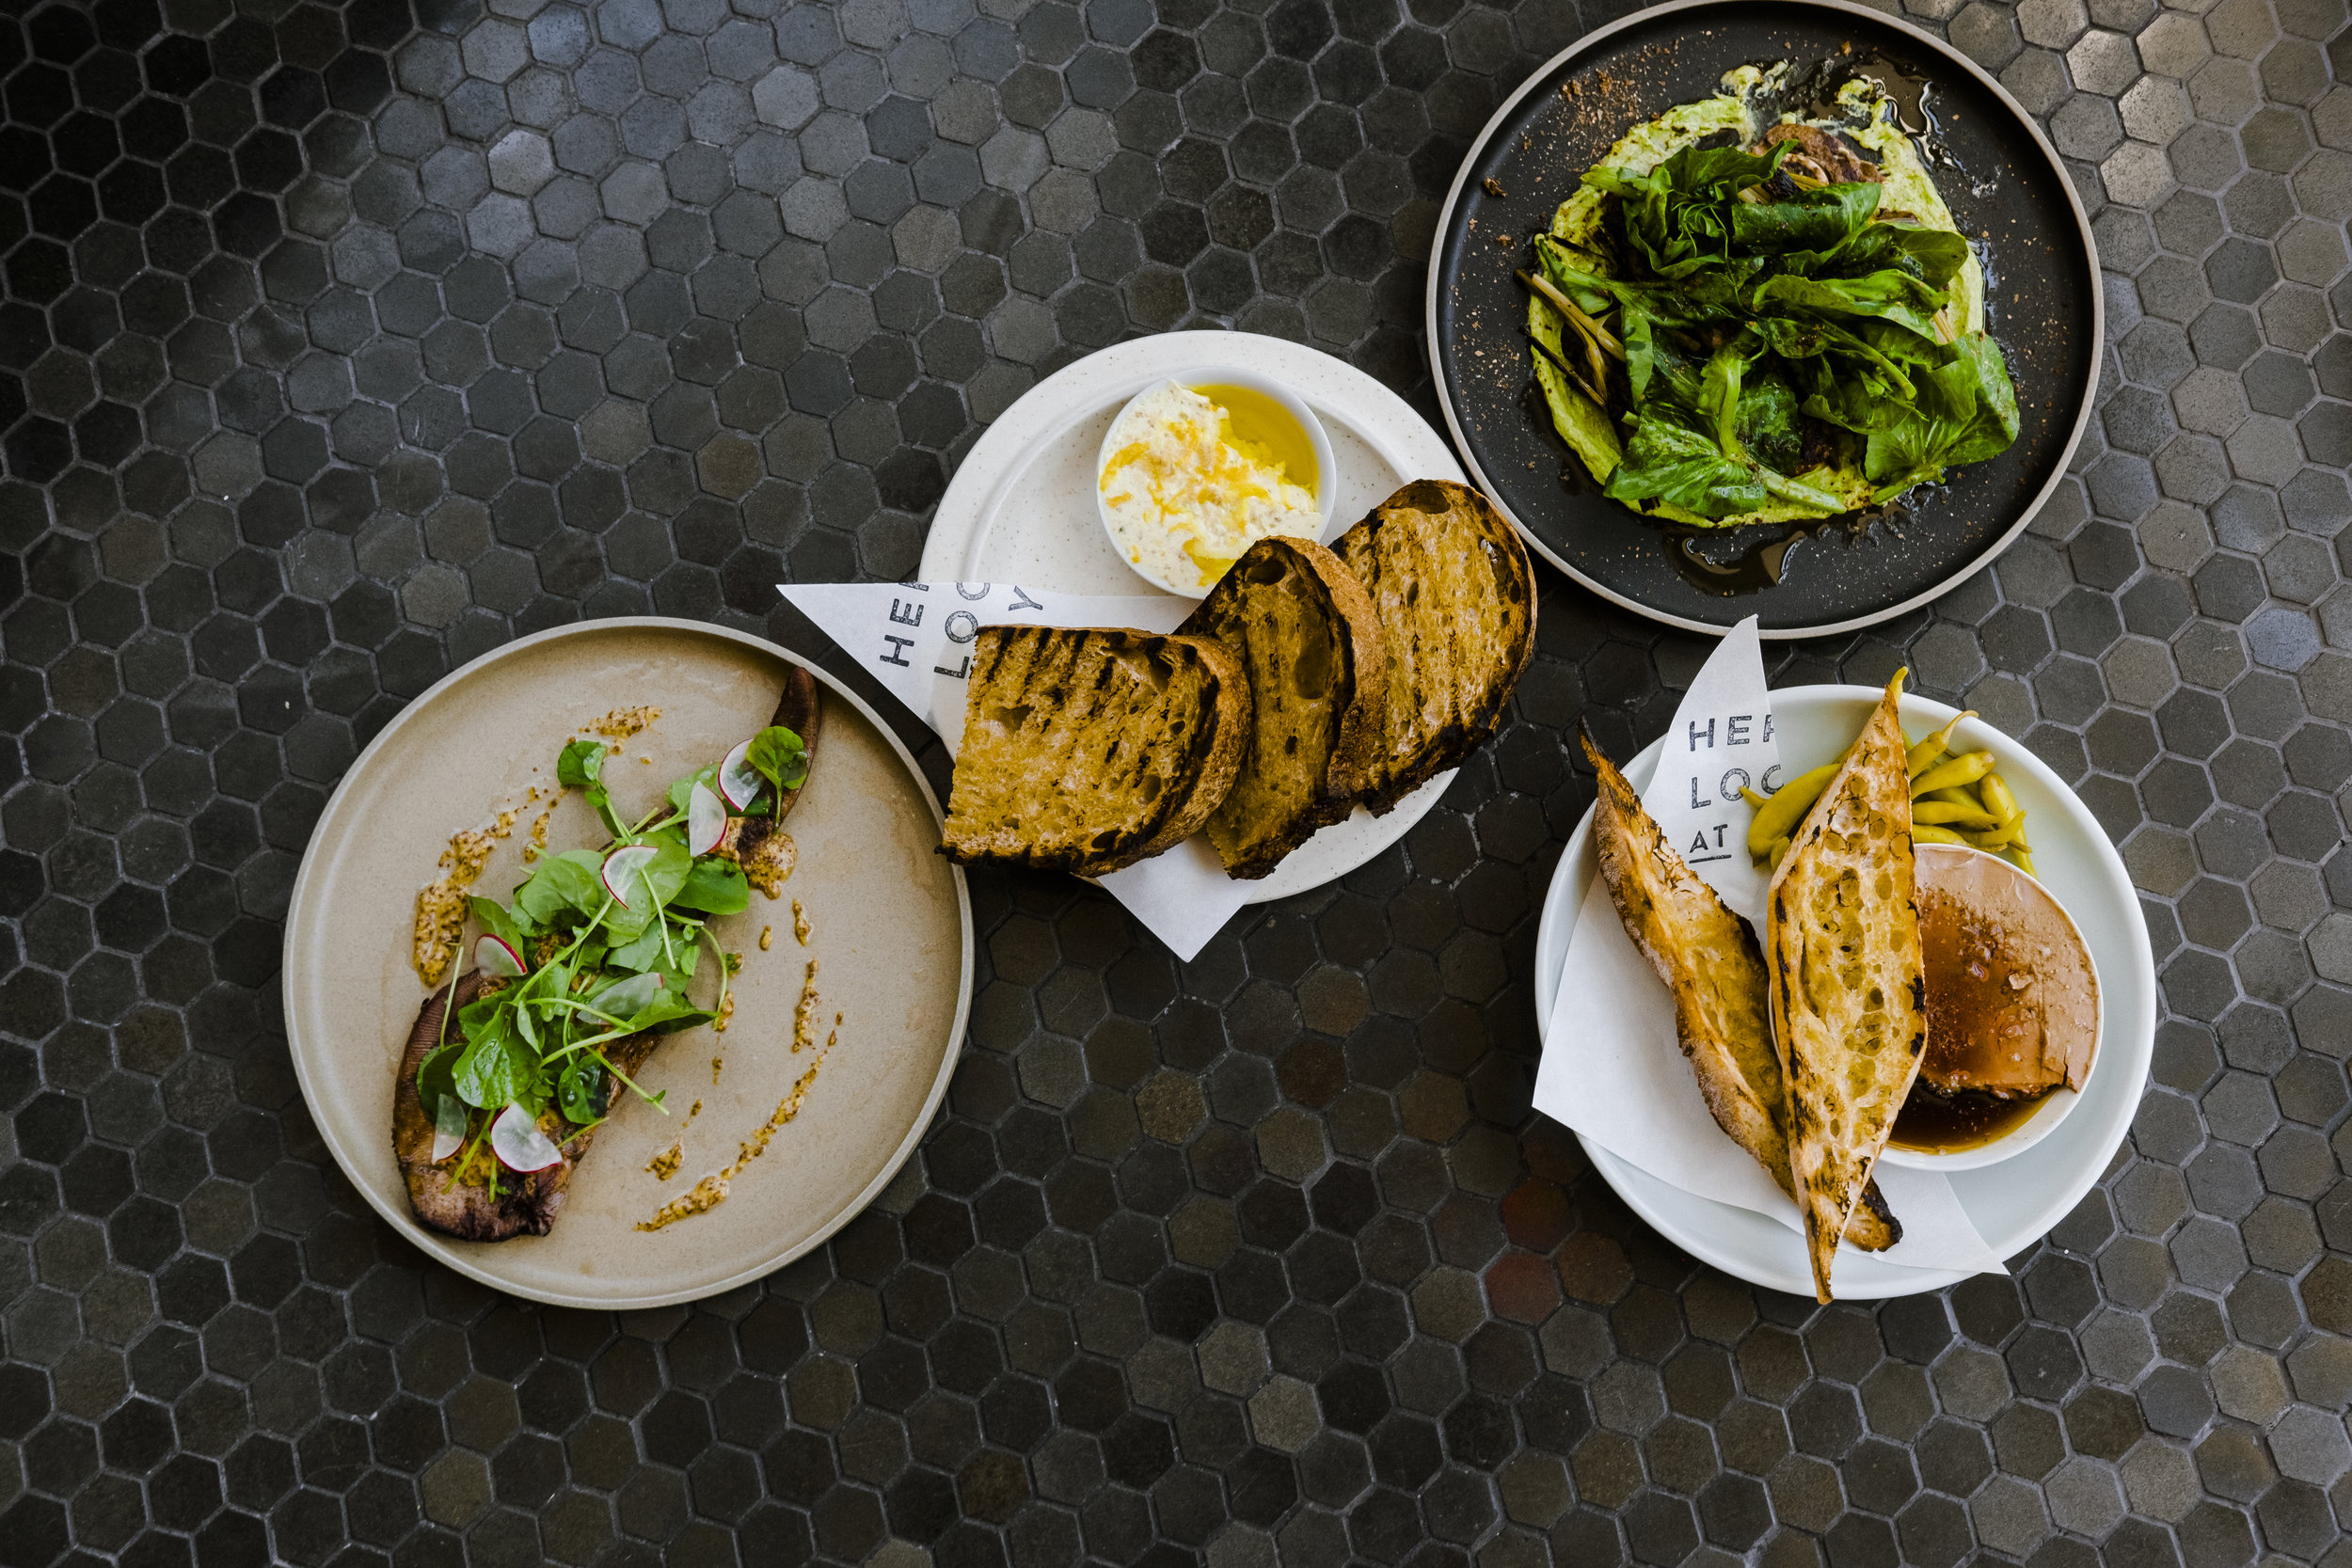 Image depicts Smoked beef tongue with garum mustard, cress, horseradish. Bub & grandma's bread with shiitake butter and sea salt. Lamb shoulder chop with miso, greens, minari, onion, and togarashi. And Chicken liver with basque peppers, smoked maple, and Bub & Grandma's baguette.